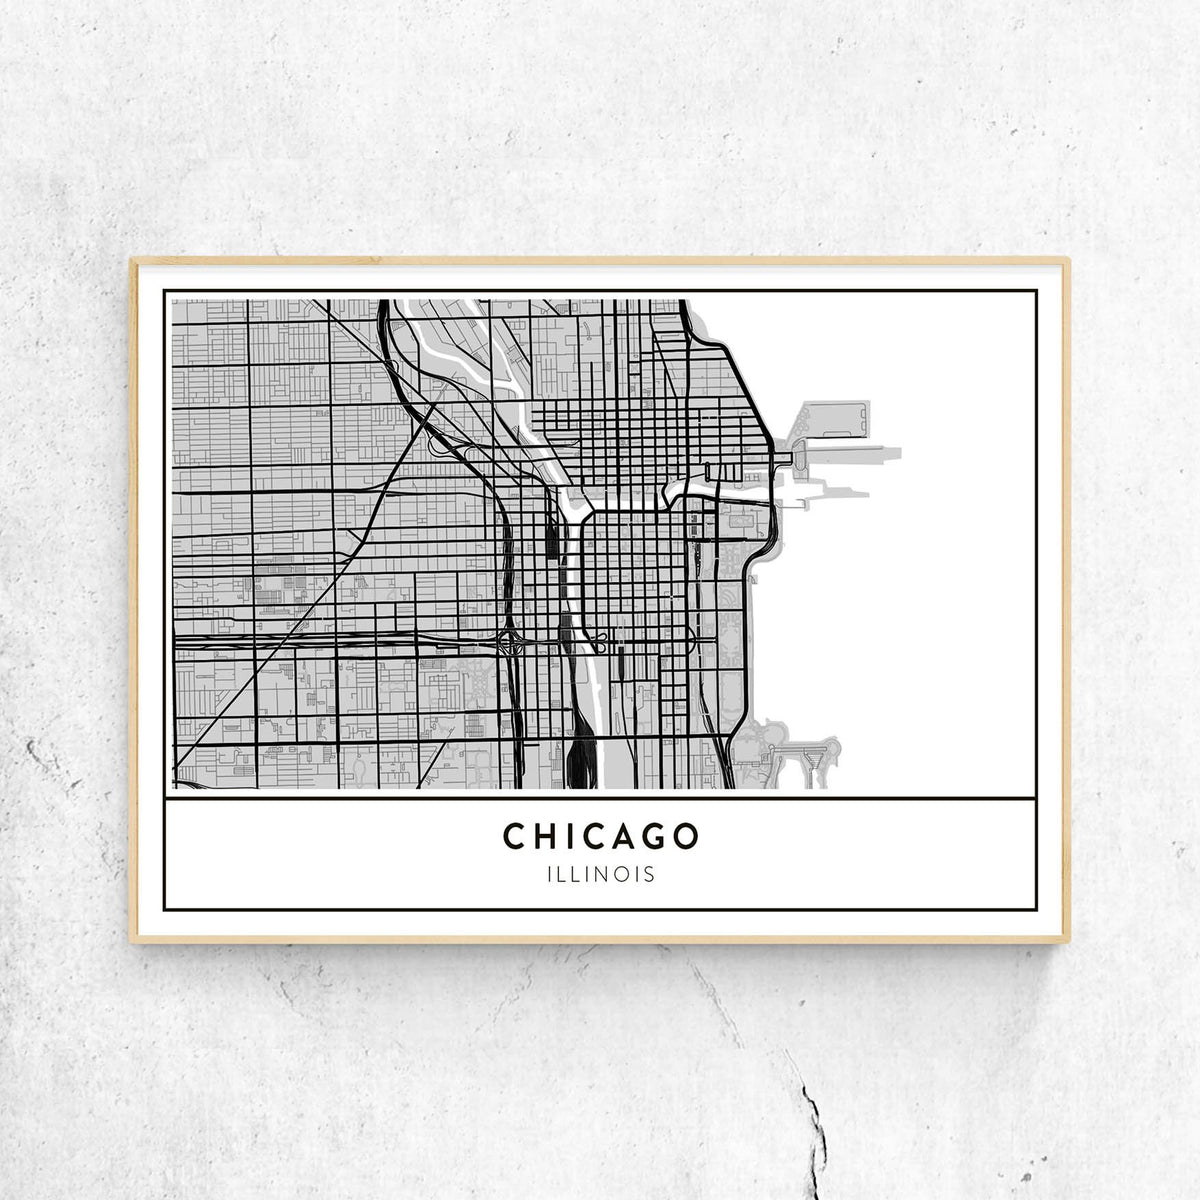 Chicago, Illinois - Custom Map Art Print (Landscape) on printable map of chicago attractions, map of north lake shore drive chicago, printable road map of illinois, printable map of downtown chicago magnificent mile, printable map of illinois highways, printable chicago skyline, printable downtown chicago city map, whites bridge chicago, printable map of navy pier chicago, printable map of southern illinois, printable map of northern illinois, map of bad dangerous neighborhoods in chicago, printable map of illinois cities, print map of chicago,